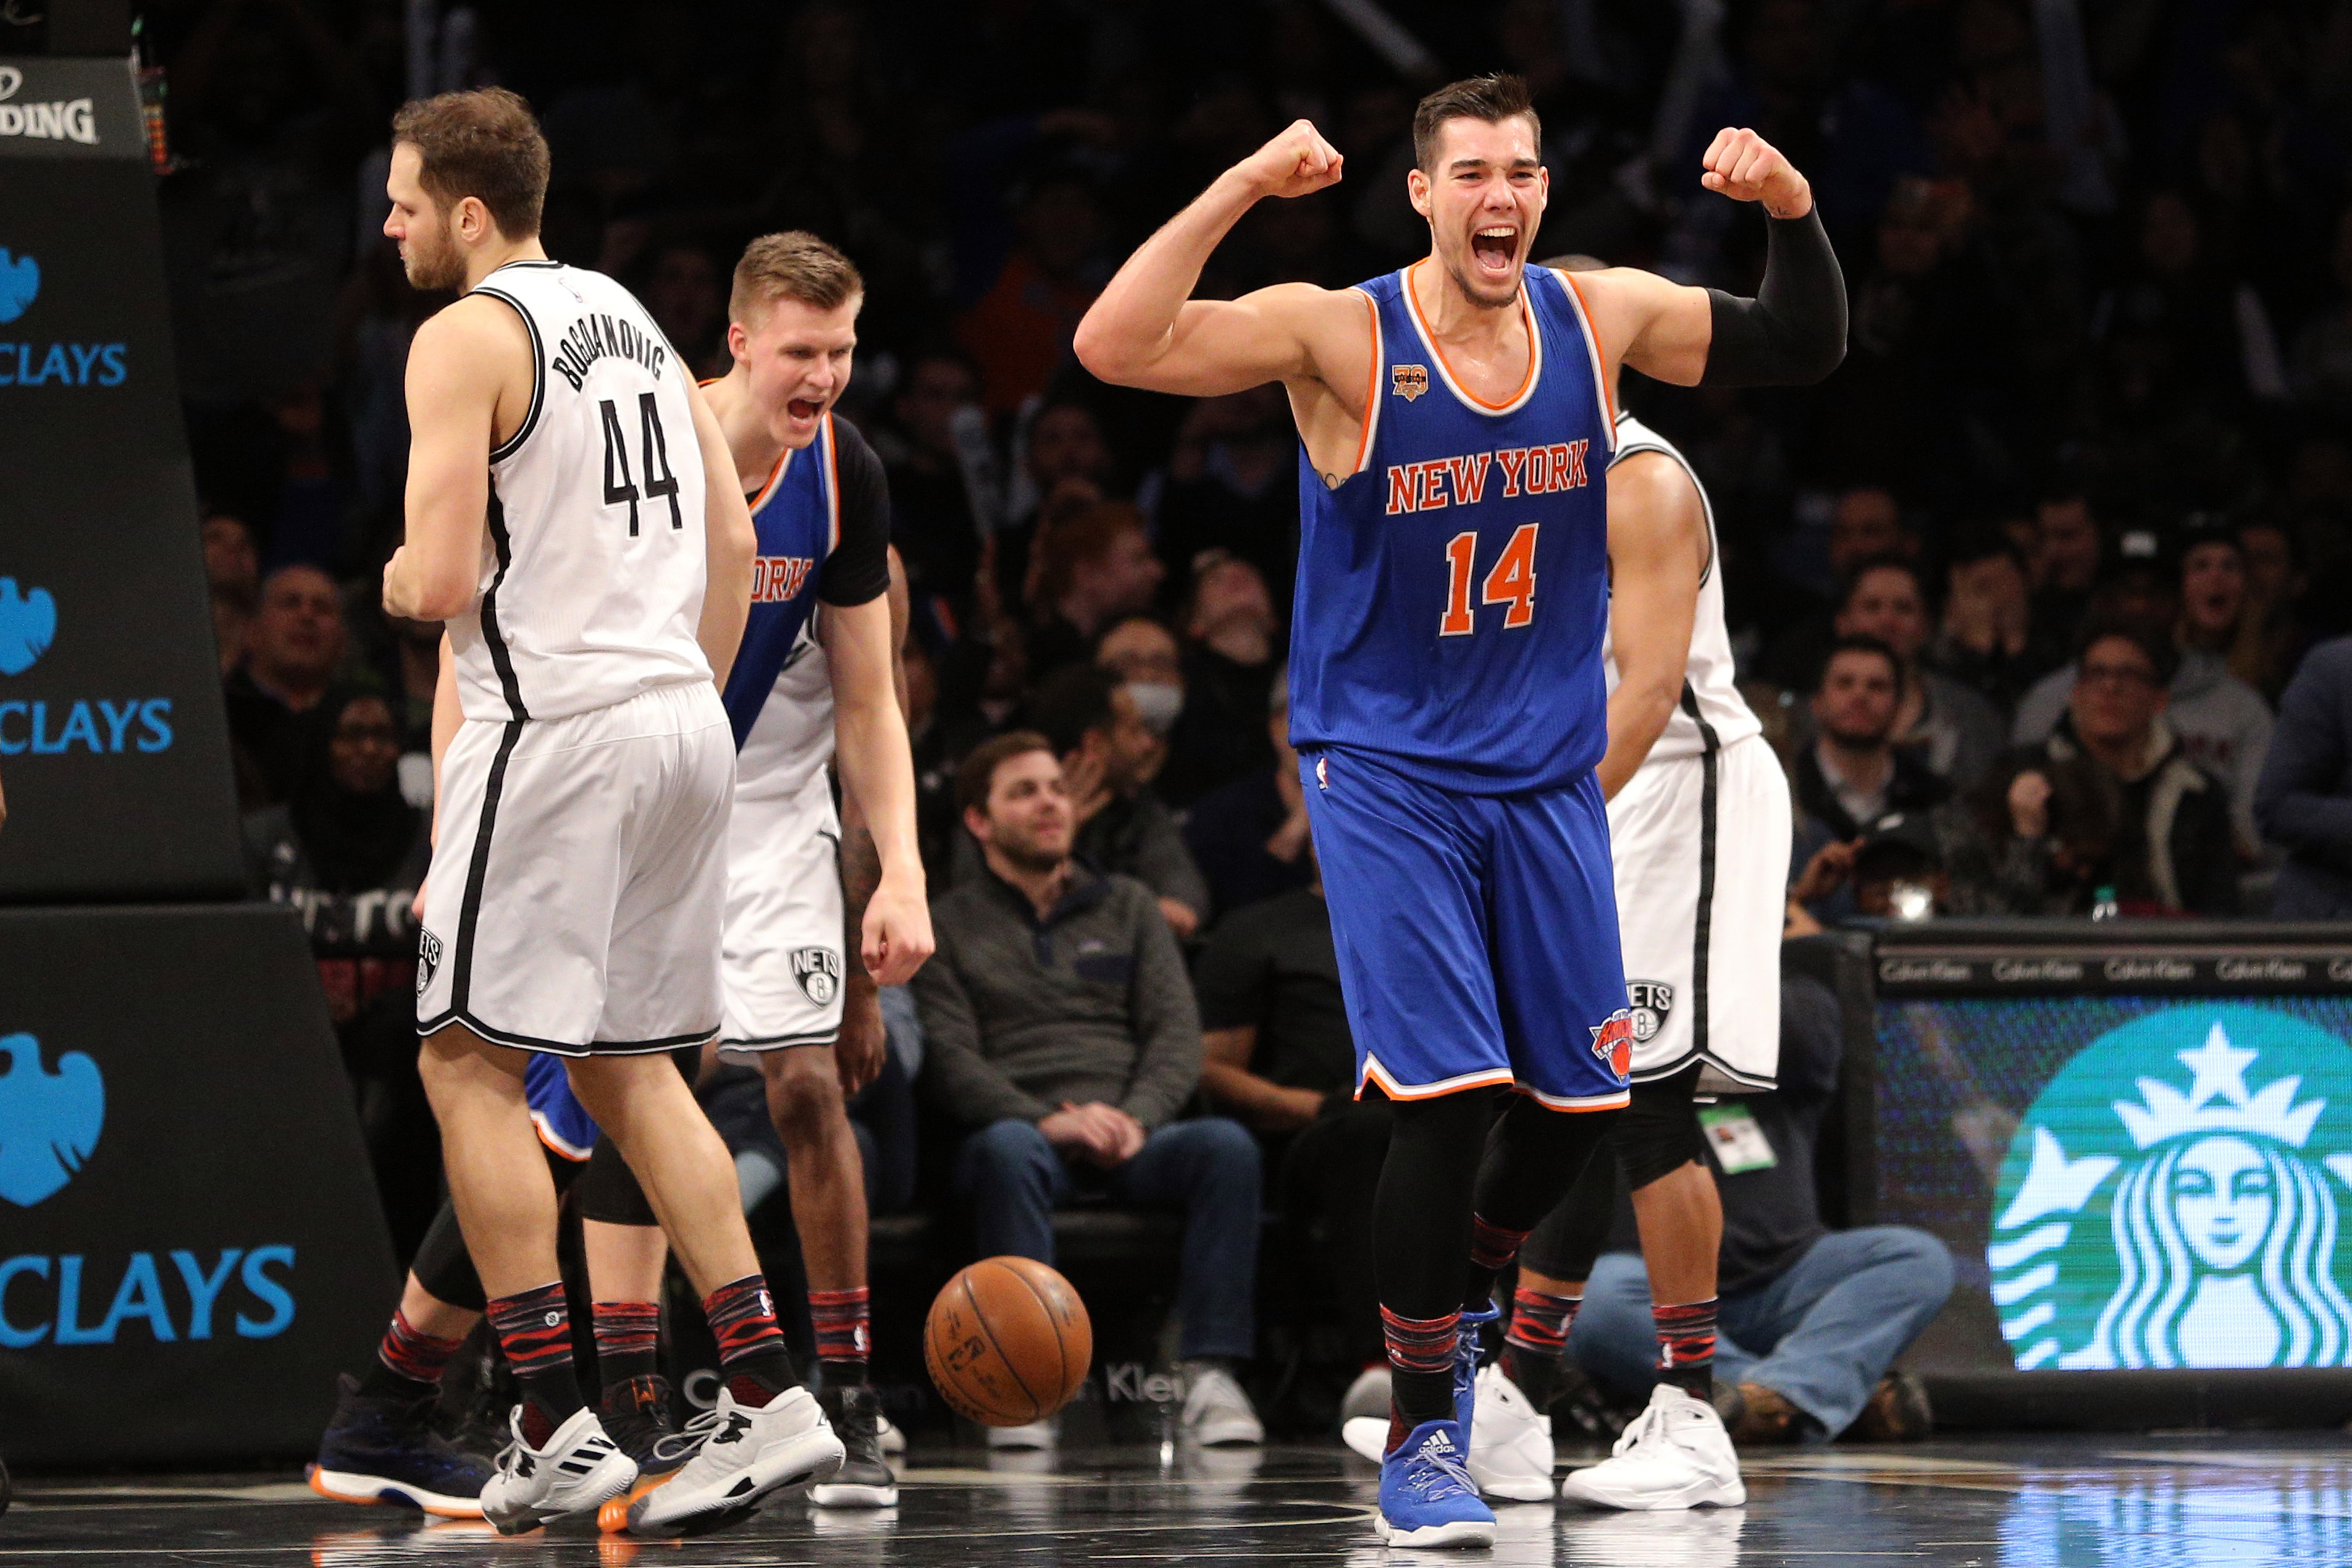 Feb 1, 2017; Brooklyn, NY, USA; New York Knicks center Willy Hernangomez (14) reacts during the fourth quarter against the Brooklyn Nets at Barclays Center. Mandatory Credit: Brad Penner-USA TODAY Sports